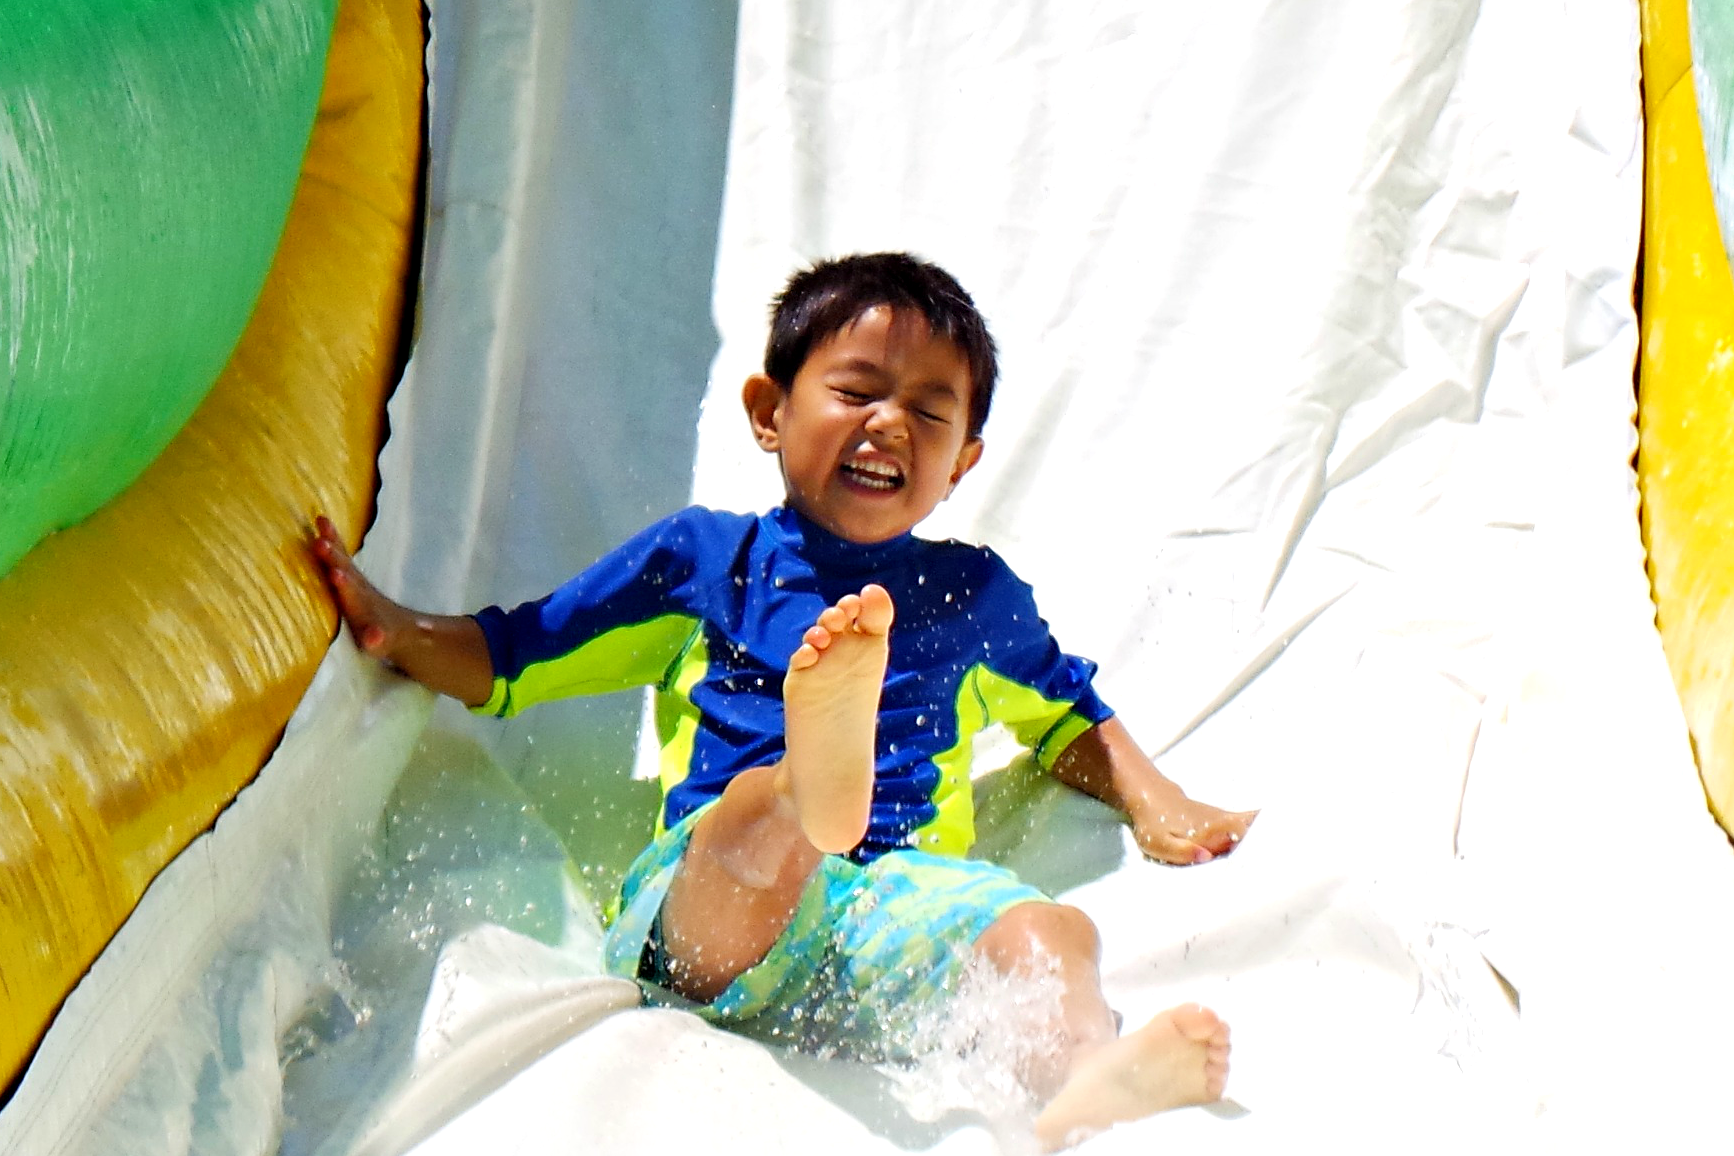 Explorer boy waterslide blue yellow shirt smile